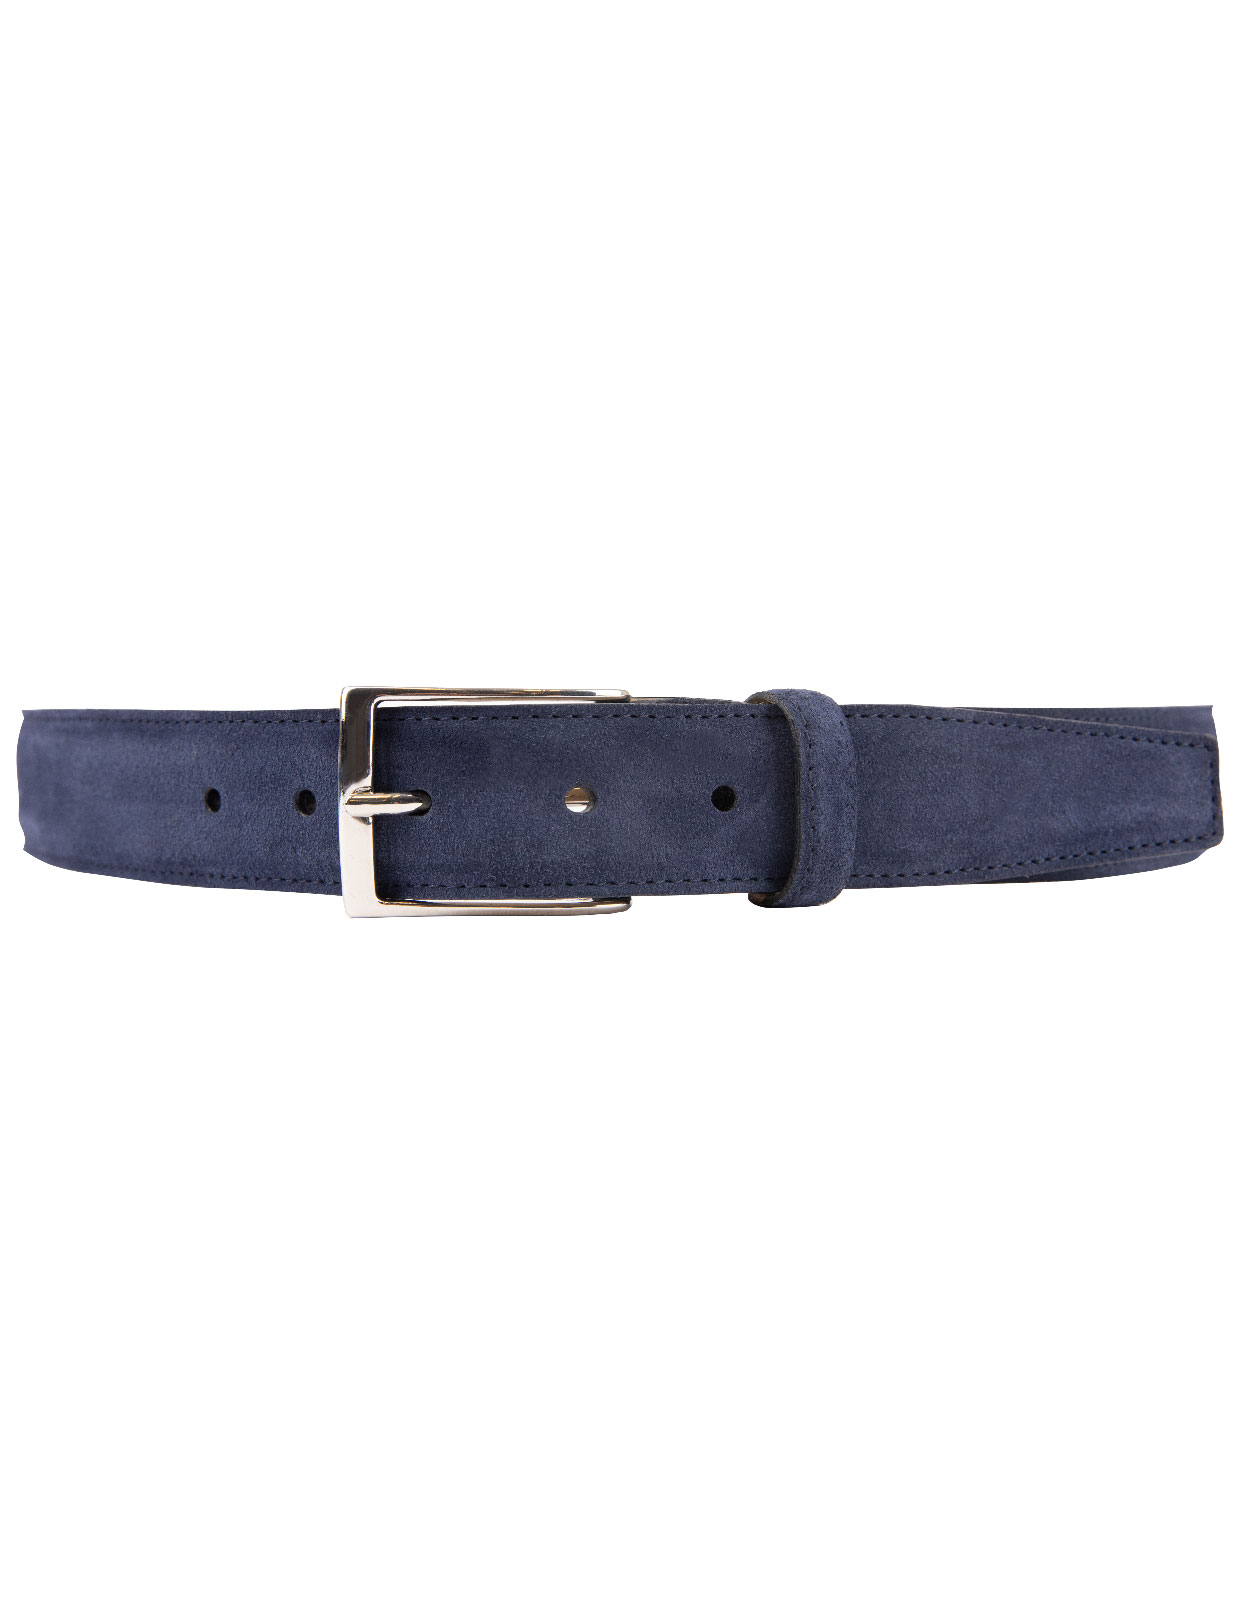 Timeless 3,5cm Belt Suede Calf Dark Navy Stl 115